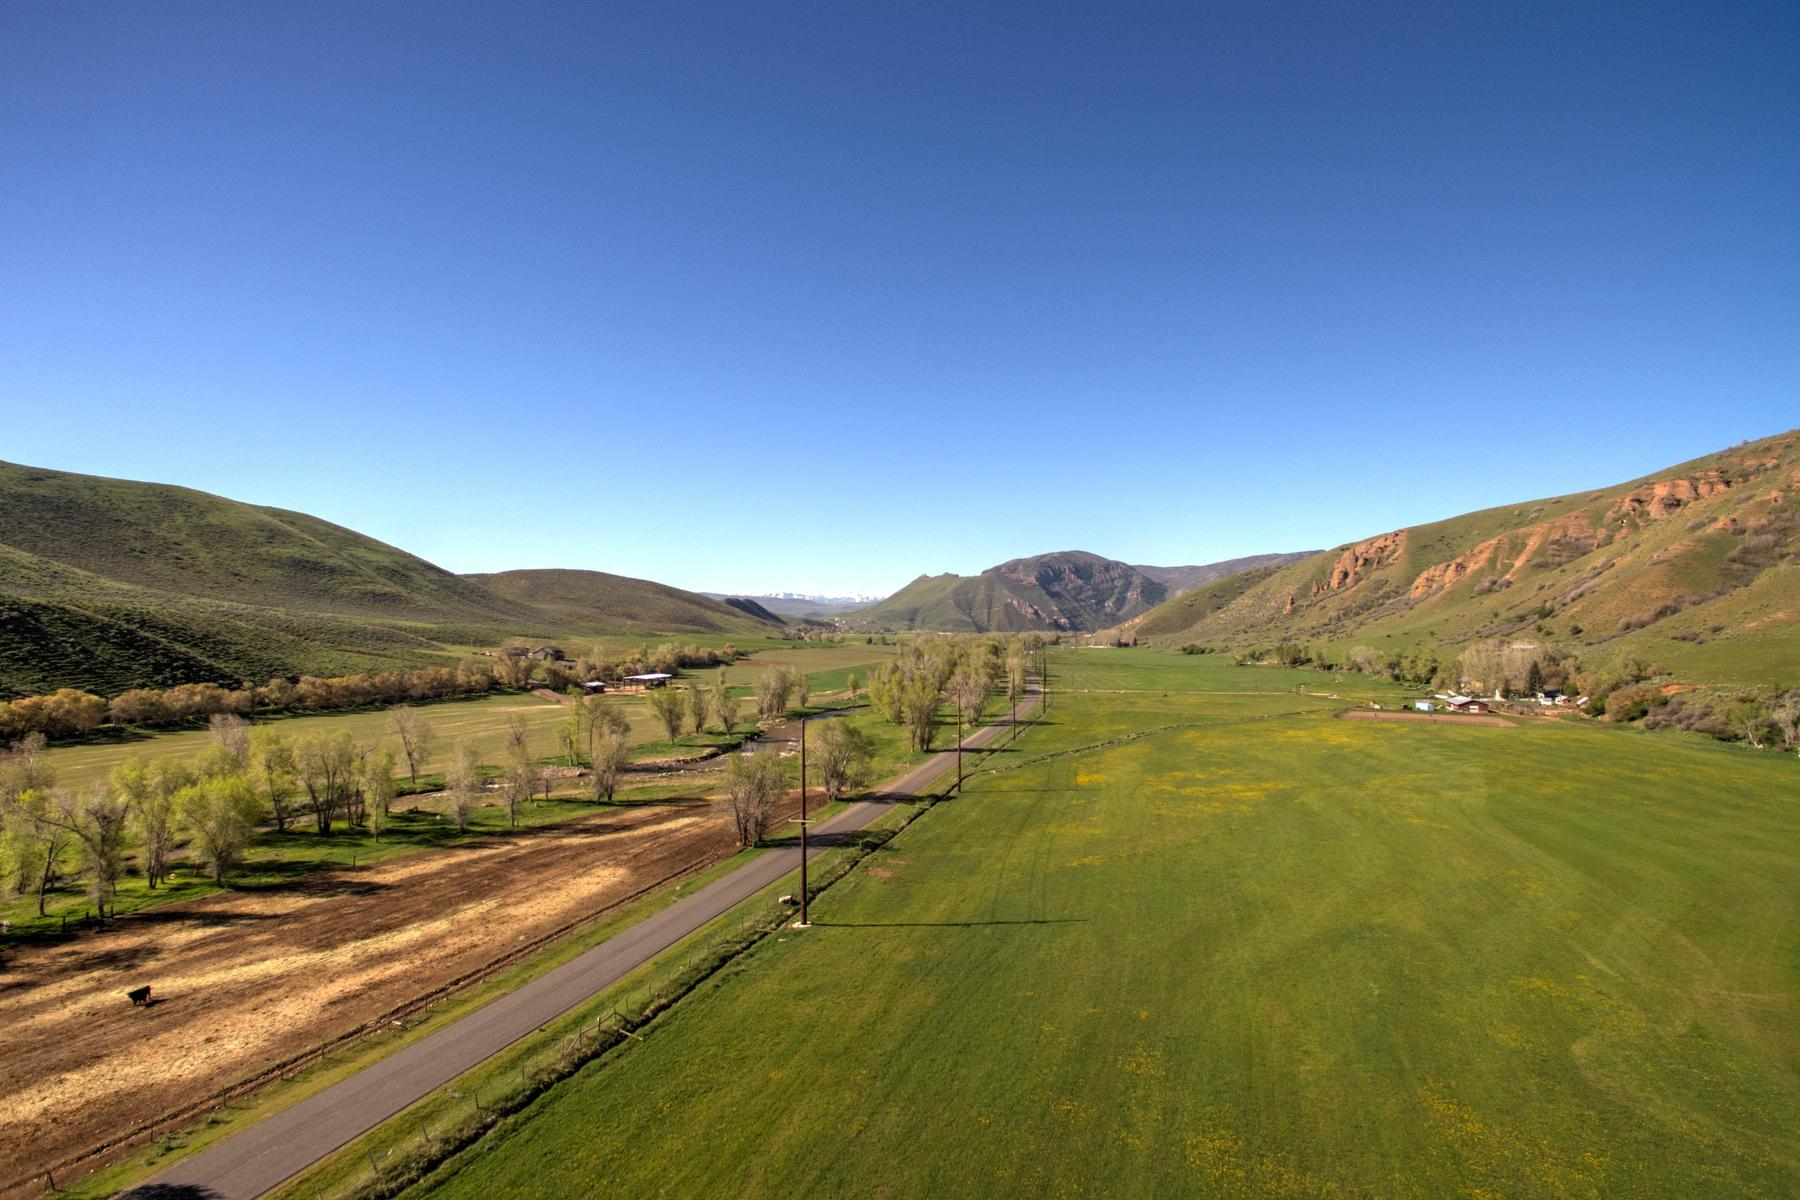 Additional photo for property listing at Peaceful 20 Plus Acre Farm Parcel in Croydon That is Close to Everything 3700 N Lost Creek Rd Croydon, Utah 84018 Estados Unidos